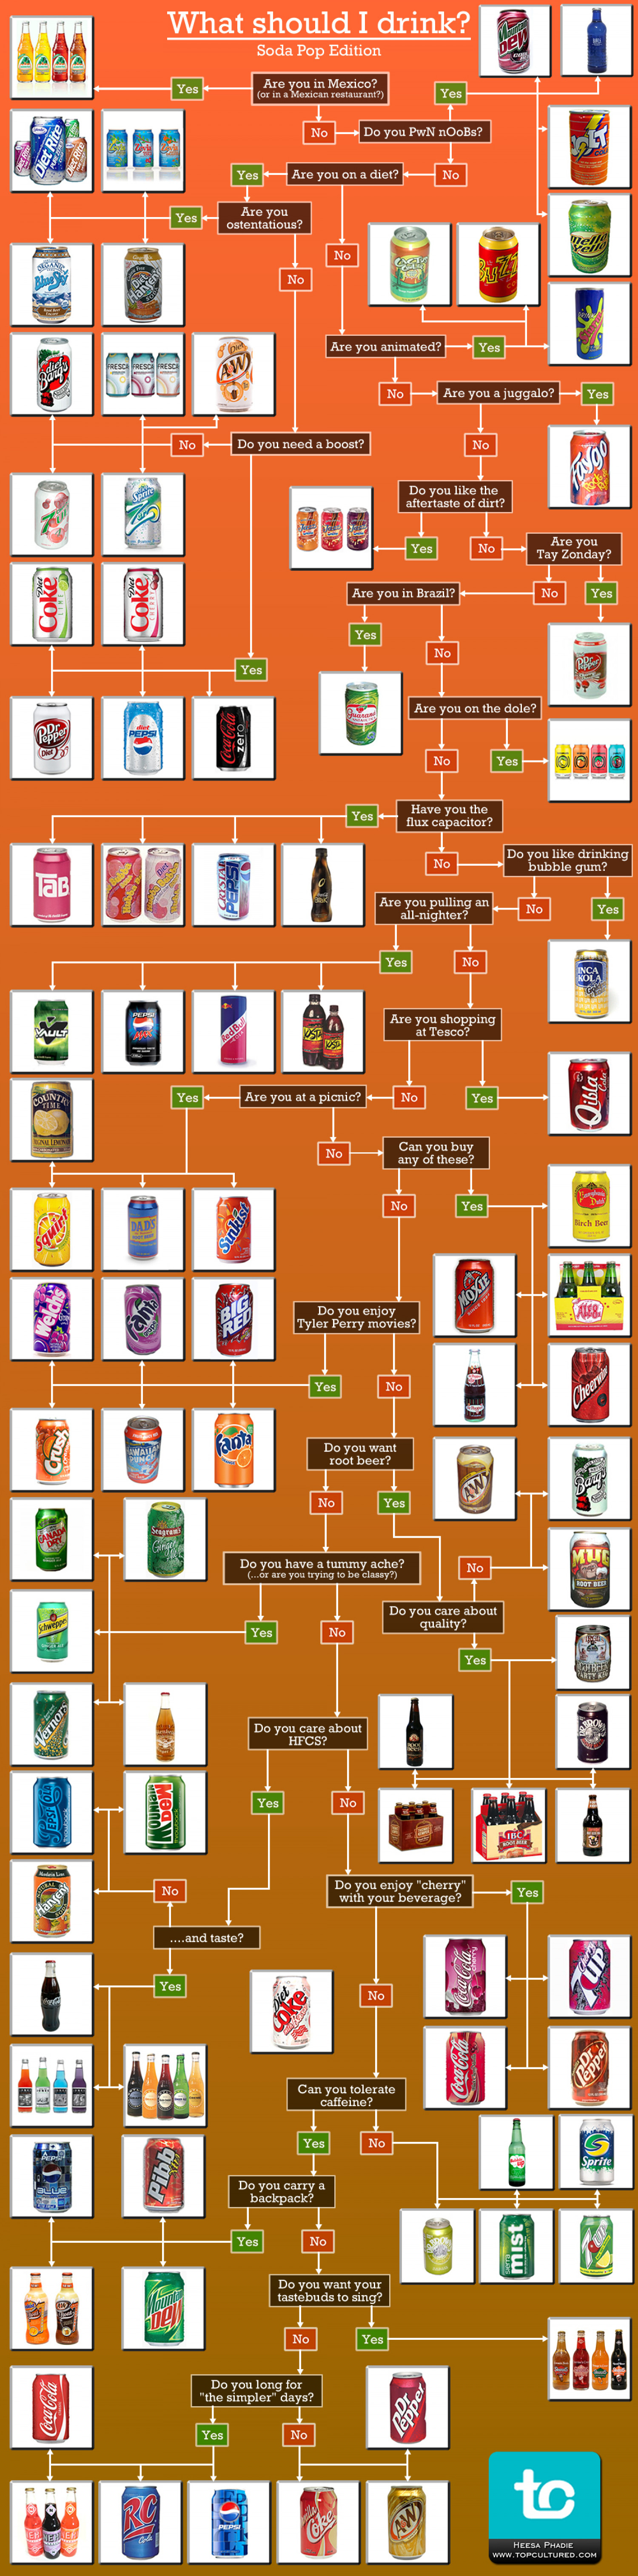 What Should I Drink? Infographic